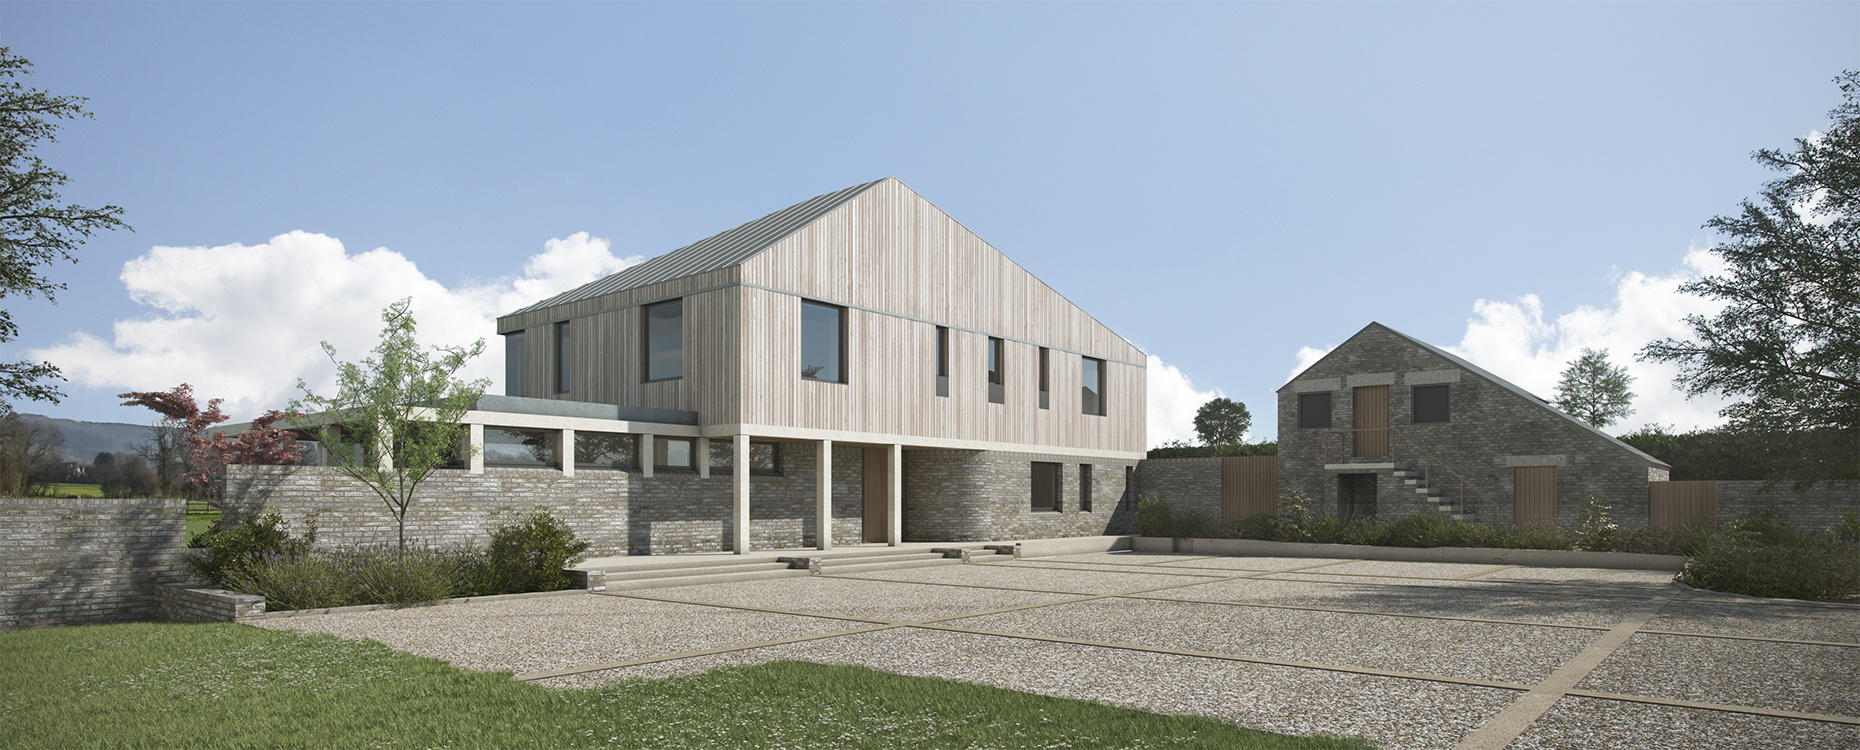 CaSA-New House-Gloucestershire-Exterior Front-BAN.jpg